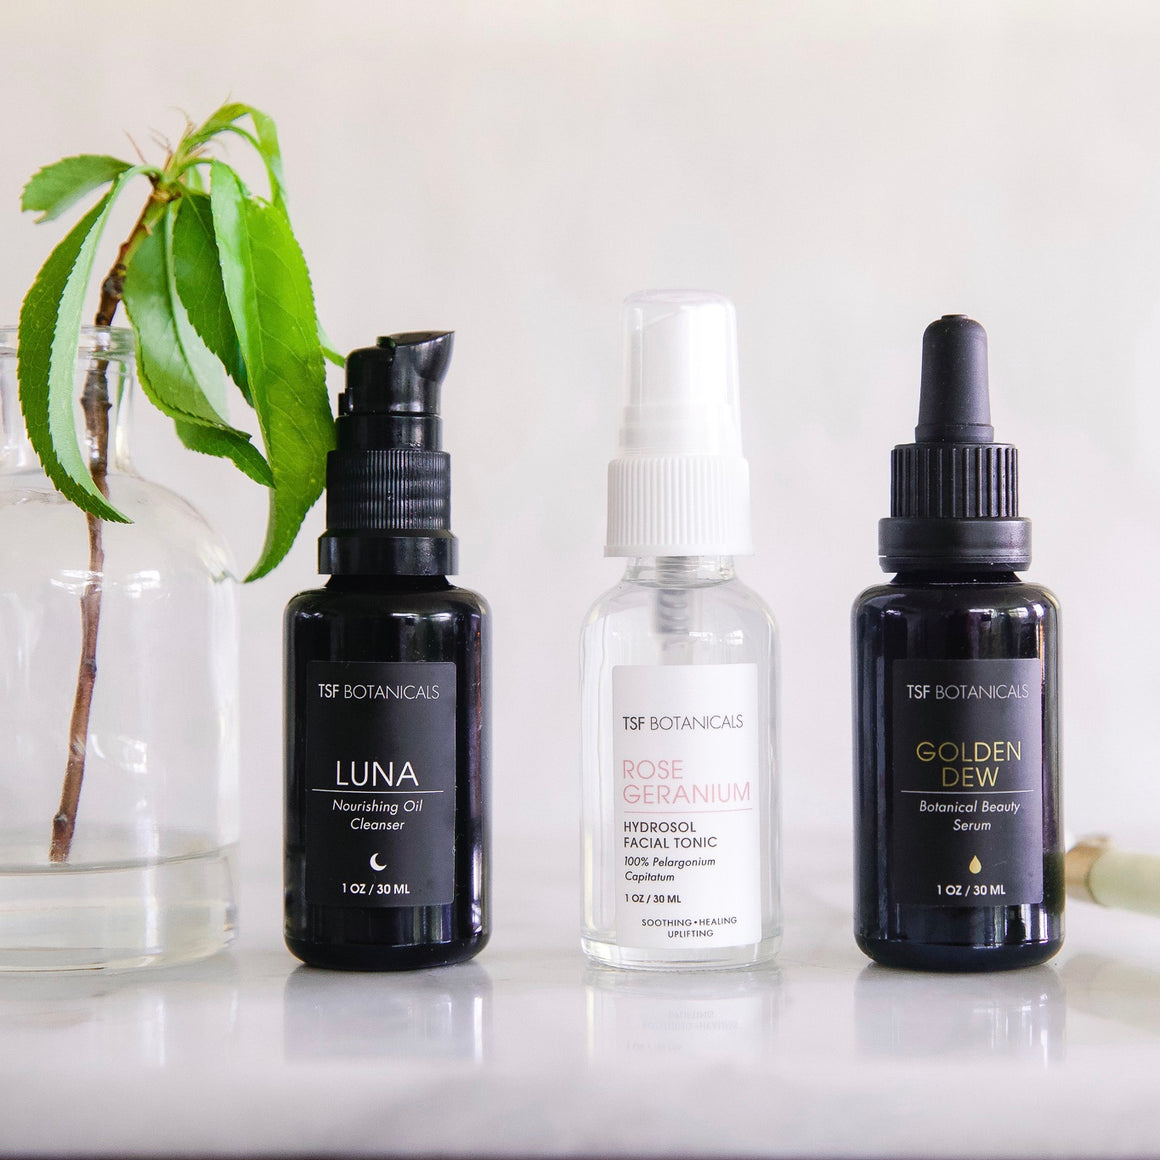 GLOWING SKIN COLLECTION || LUNA PLANT CLEANSING OIL, ROSE GERANIUM HYDROSOL + GOLDEN DEW